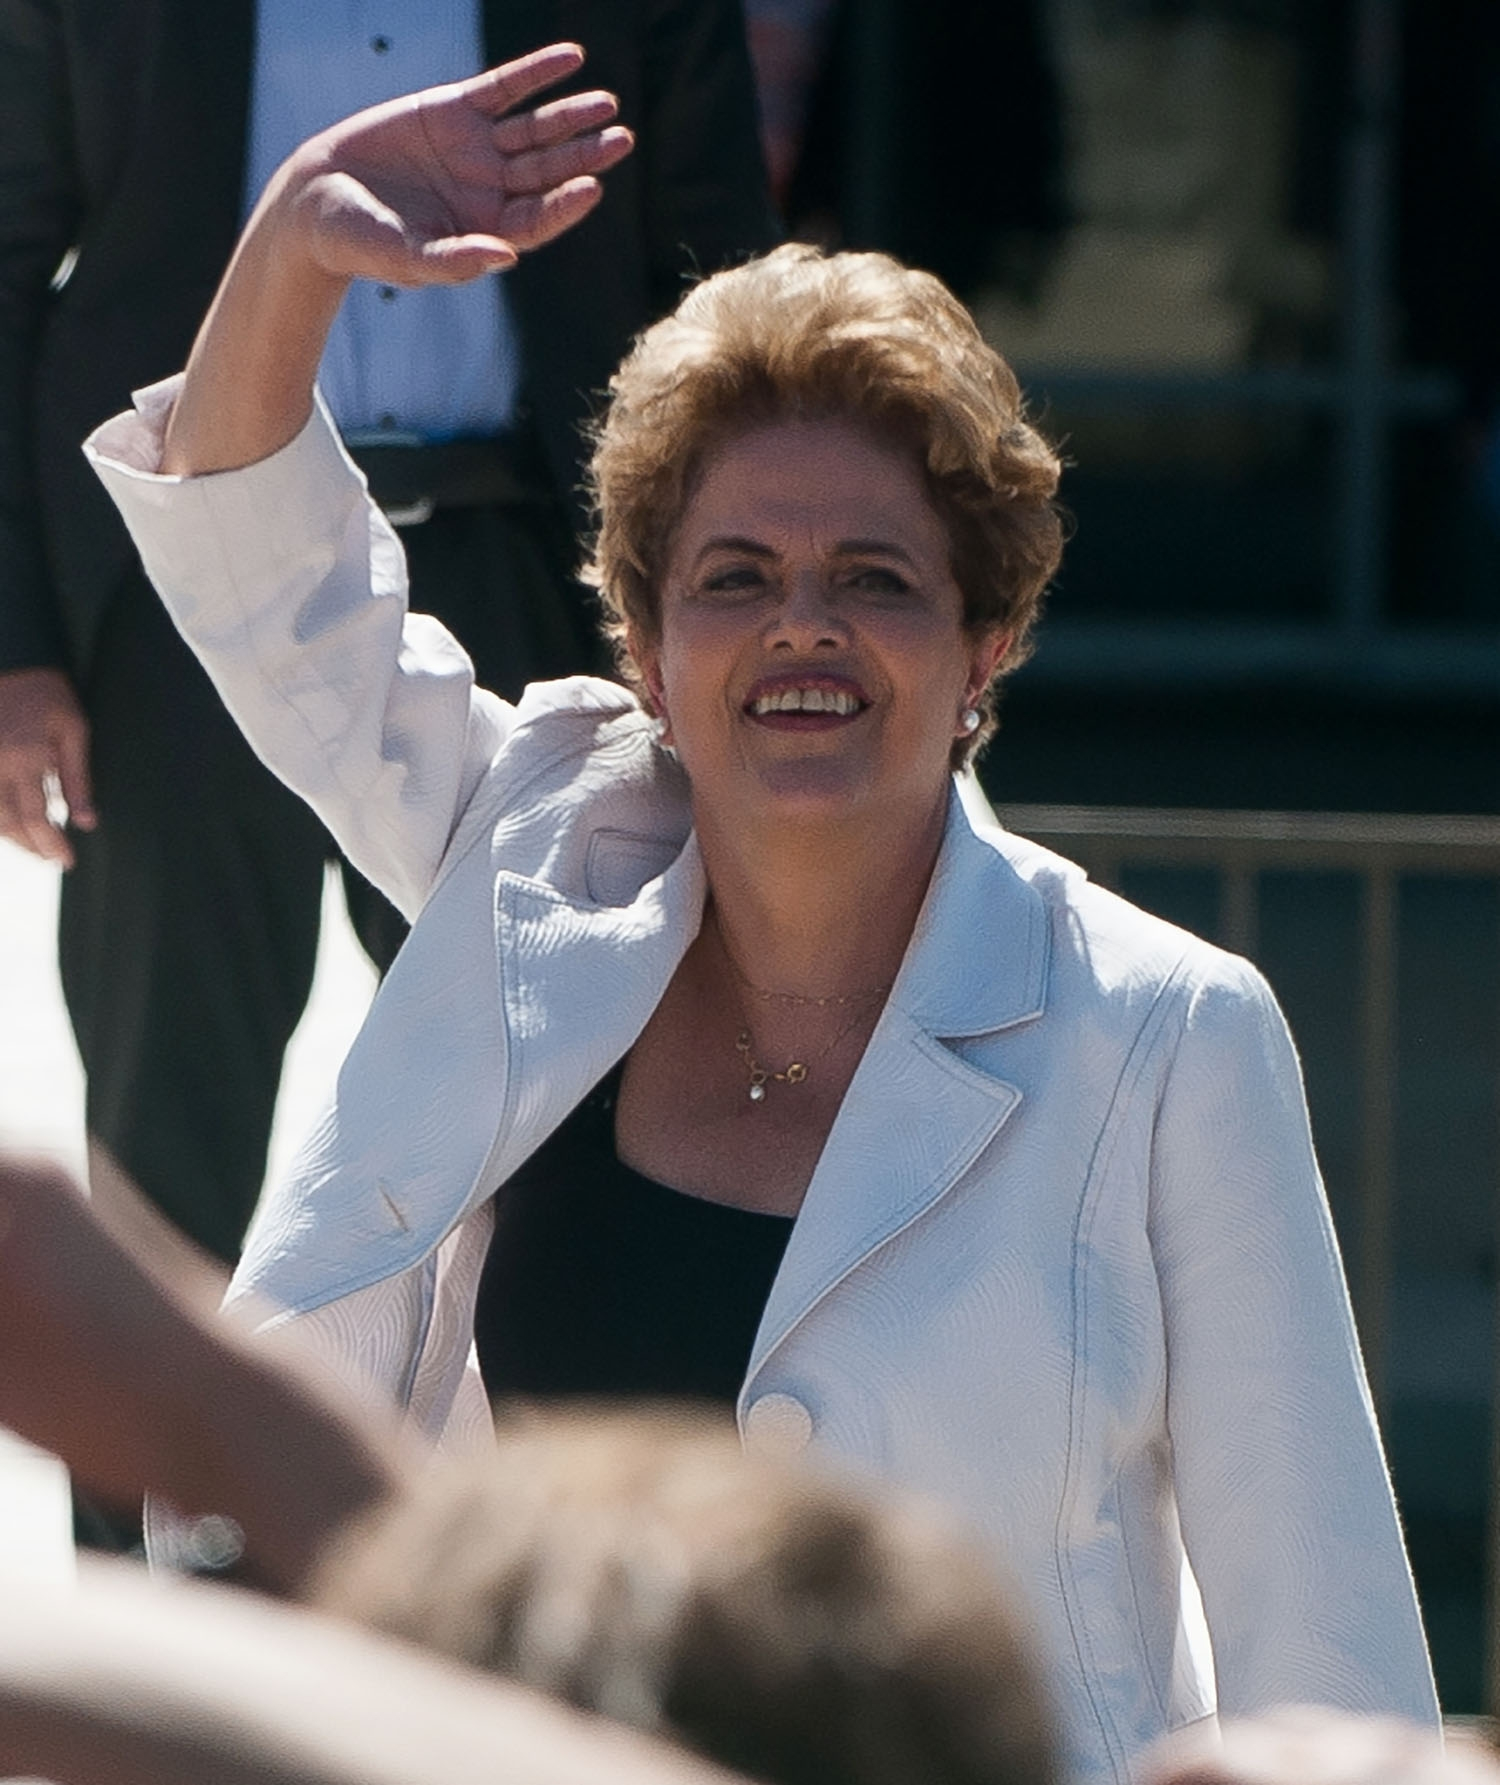 Brazil's suspended President Dilma Rousseff waves to supporters as she leaves Planalto Palace in Brasilia on May 12, 2016